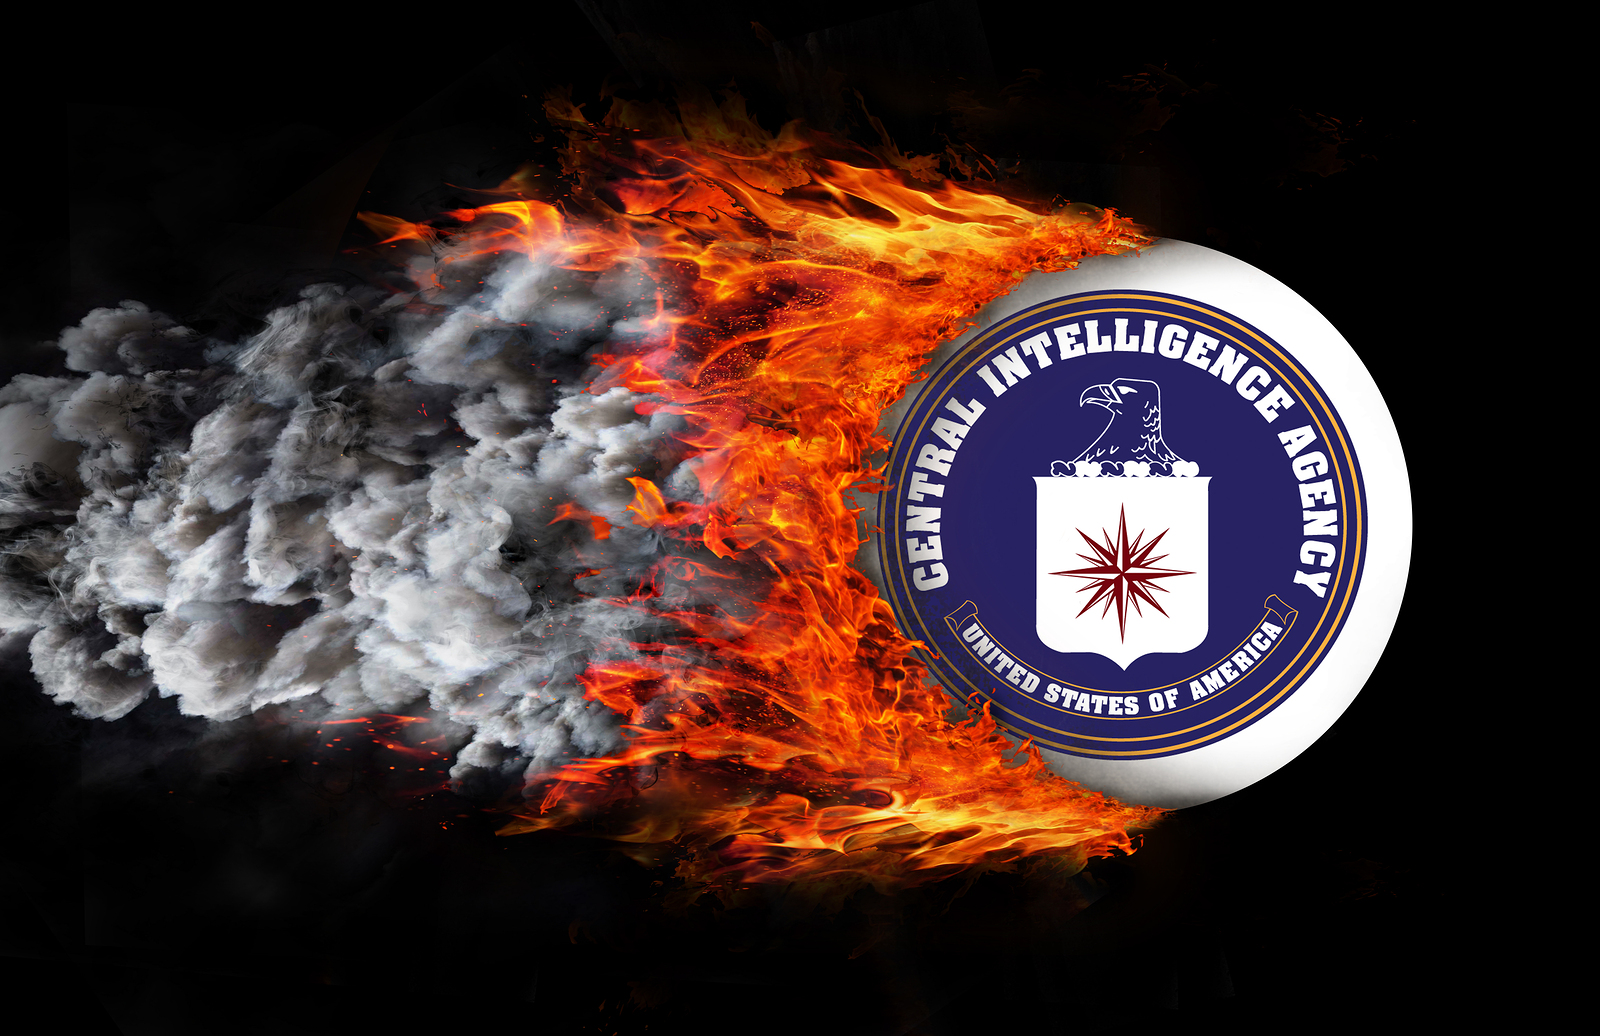 Former CIA leaders should stay out of presidential election